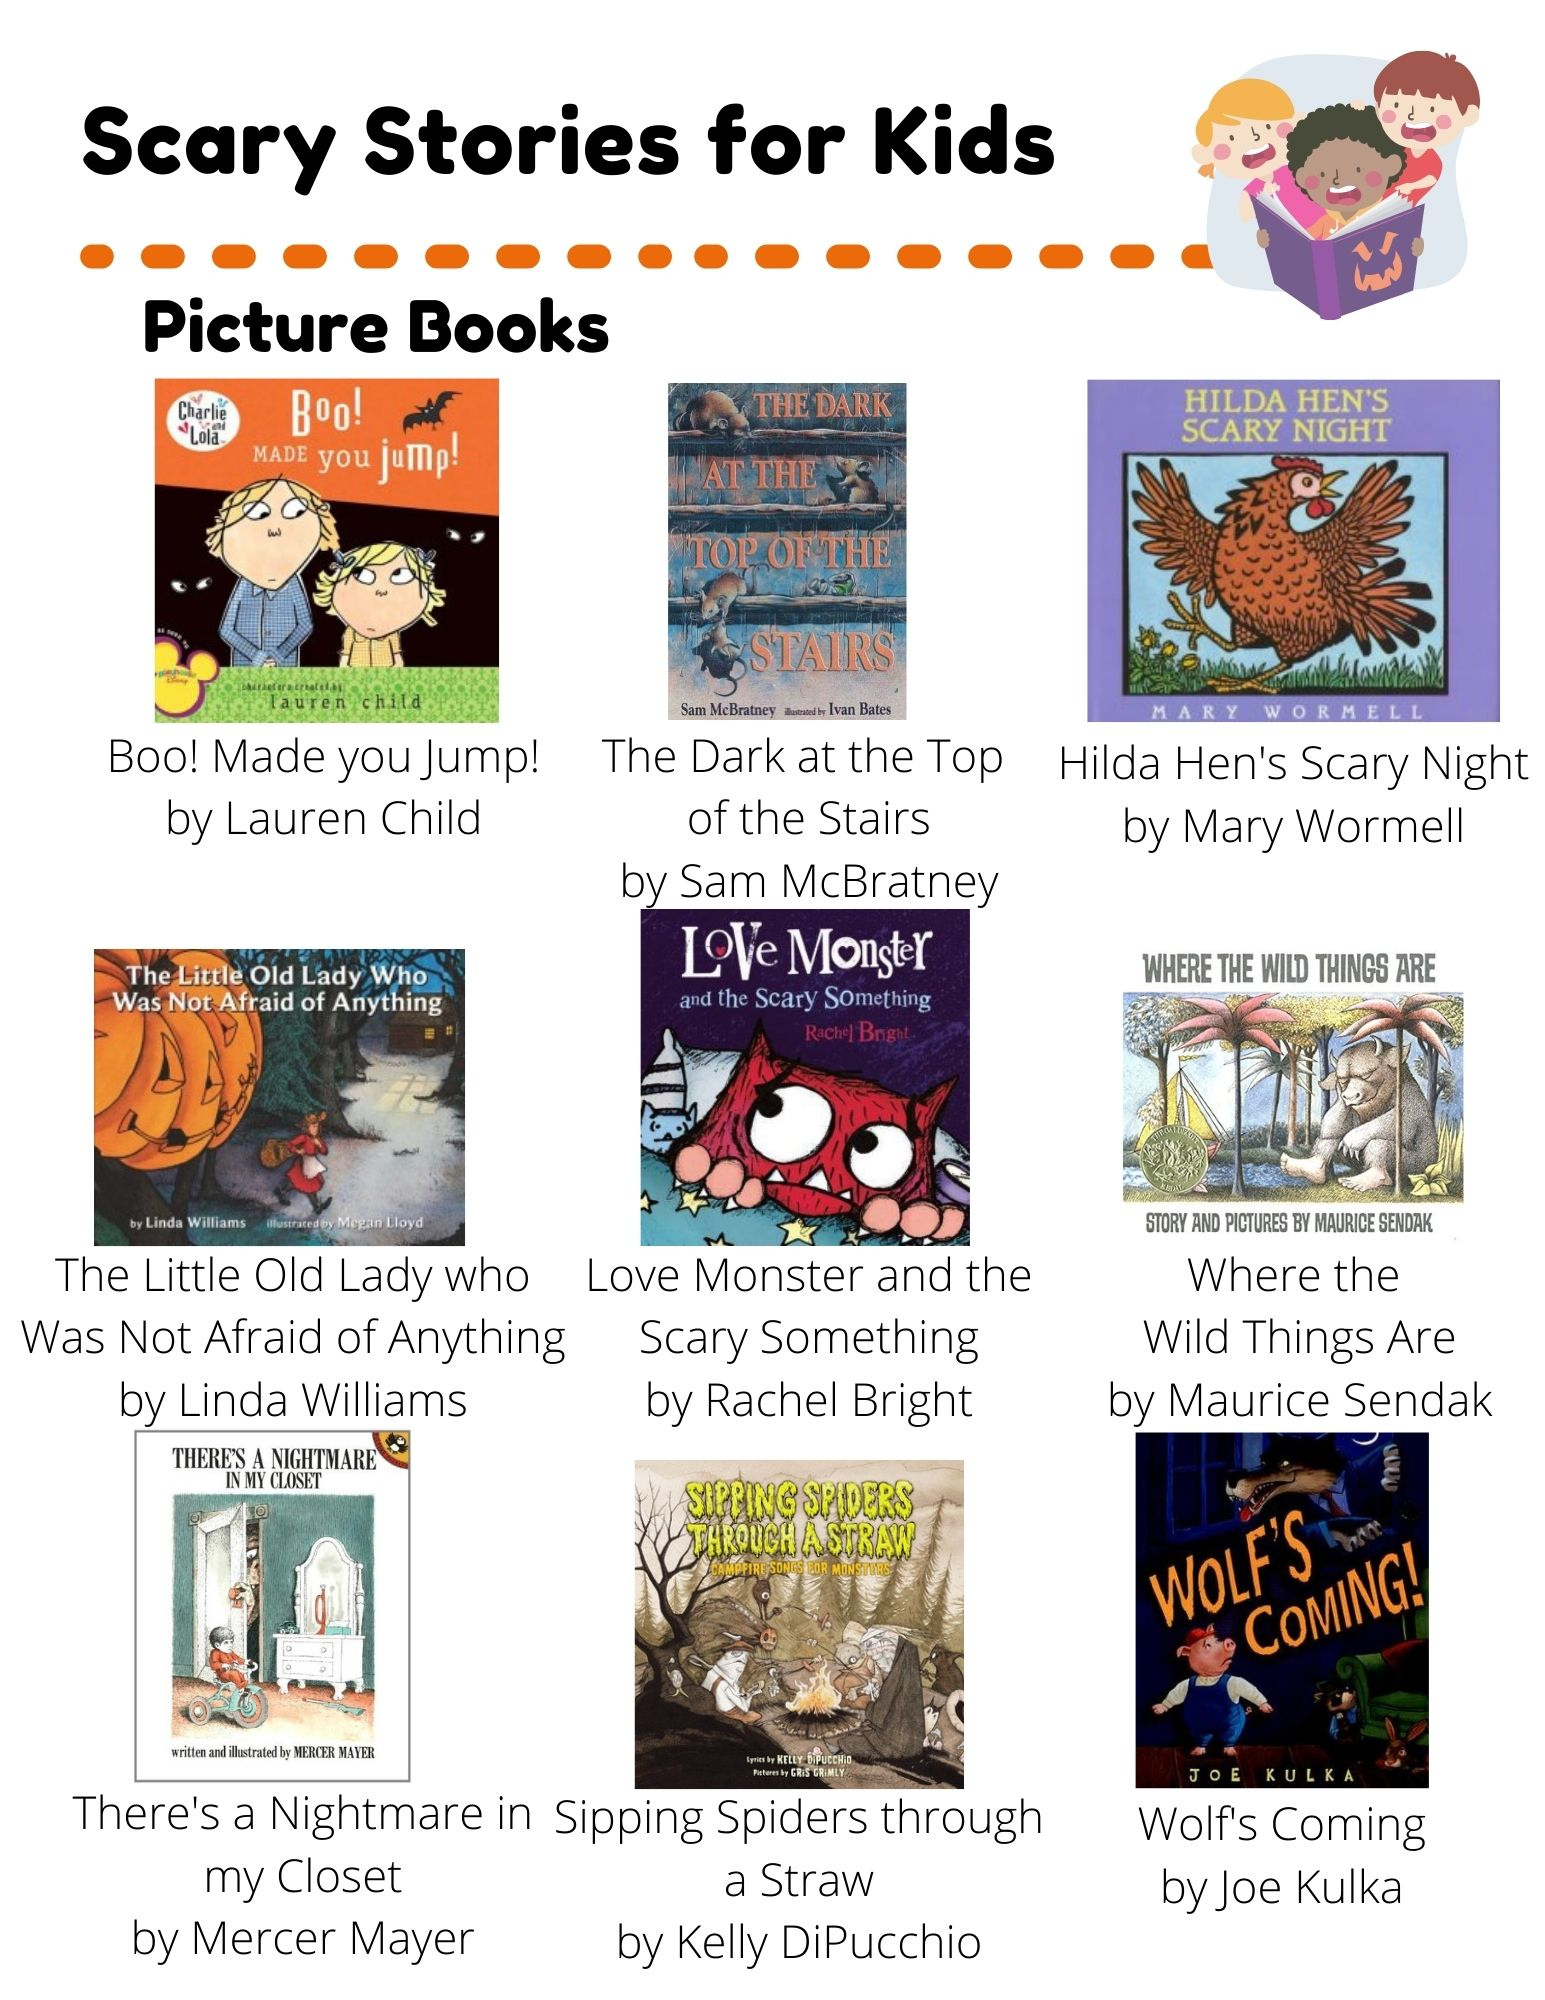 Scary Stories: Picture Books: Boo! Made you Jump! by Lauren Child, The Dark at the Top  of the Stairs by Sam McBratney, Hilda Hen's Scary Night by Mary Wormell, The Little Old Lady who Was Not Afraid of Anything by Linda Williams, Love Monster and the Scary Something by Rachel Bright, Where the  Wild Things Are by Maurice Sendak, There's a Nightmare in my Closet by Mercer Mayer, Sipping Spiders through a Straw by Kelly DiPucchio, Wolf's Coming by Joe Kulka. Chapter Books: The Graveyard Book by Neil Gaiman, Goosebumps Series by R.L. Stine, Scary Stories to Tell in the Dark by Alvin Schwartz, The Witches by Roald Dahl, Coraline by Neil Gaiman, Doll Bones by Holly Black. Easy Readers: In A Dark Dark Room by Alvin Schwartz, Fly Guy Presents Scary Creatures by Tedd Arnold, Stories to Scare You by Kathleen Keeler.